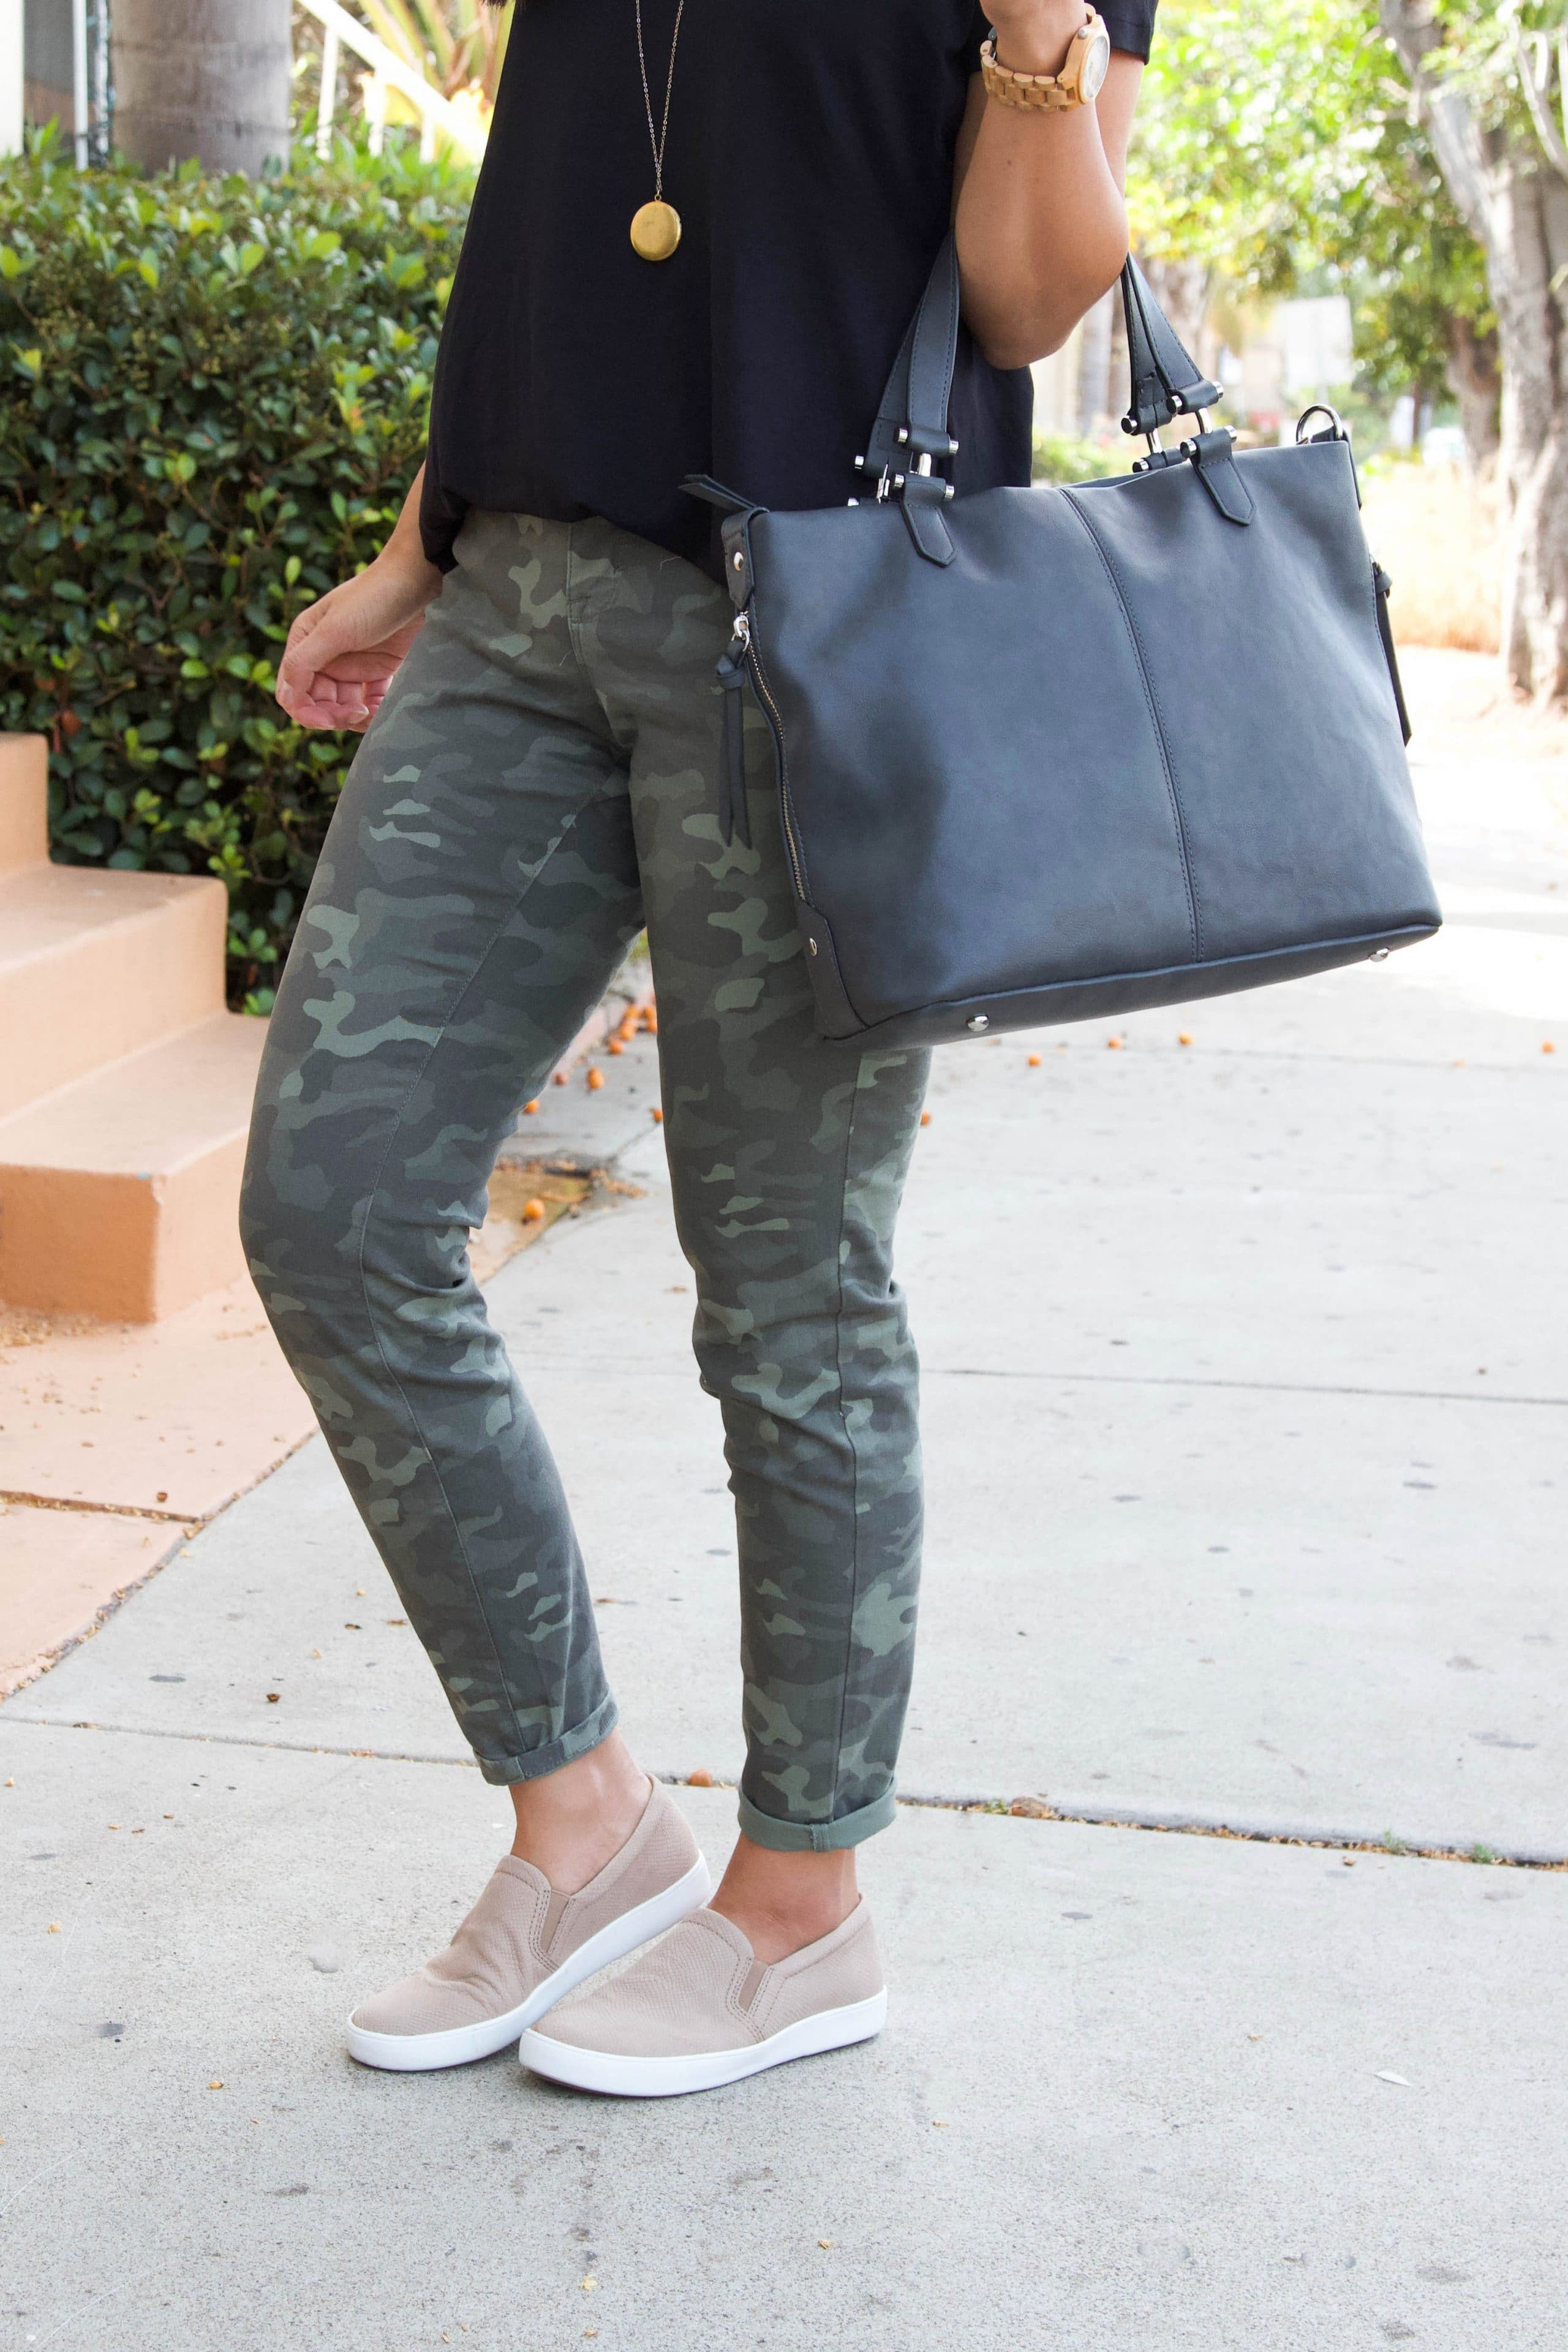 black top + taupe sneakers + green camo pants + grey tote